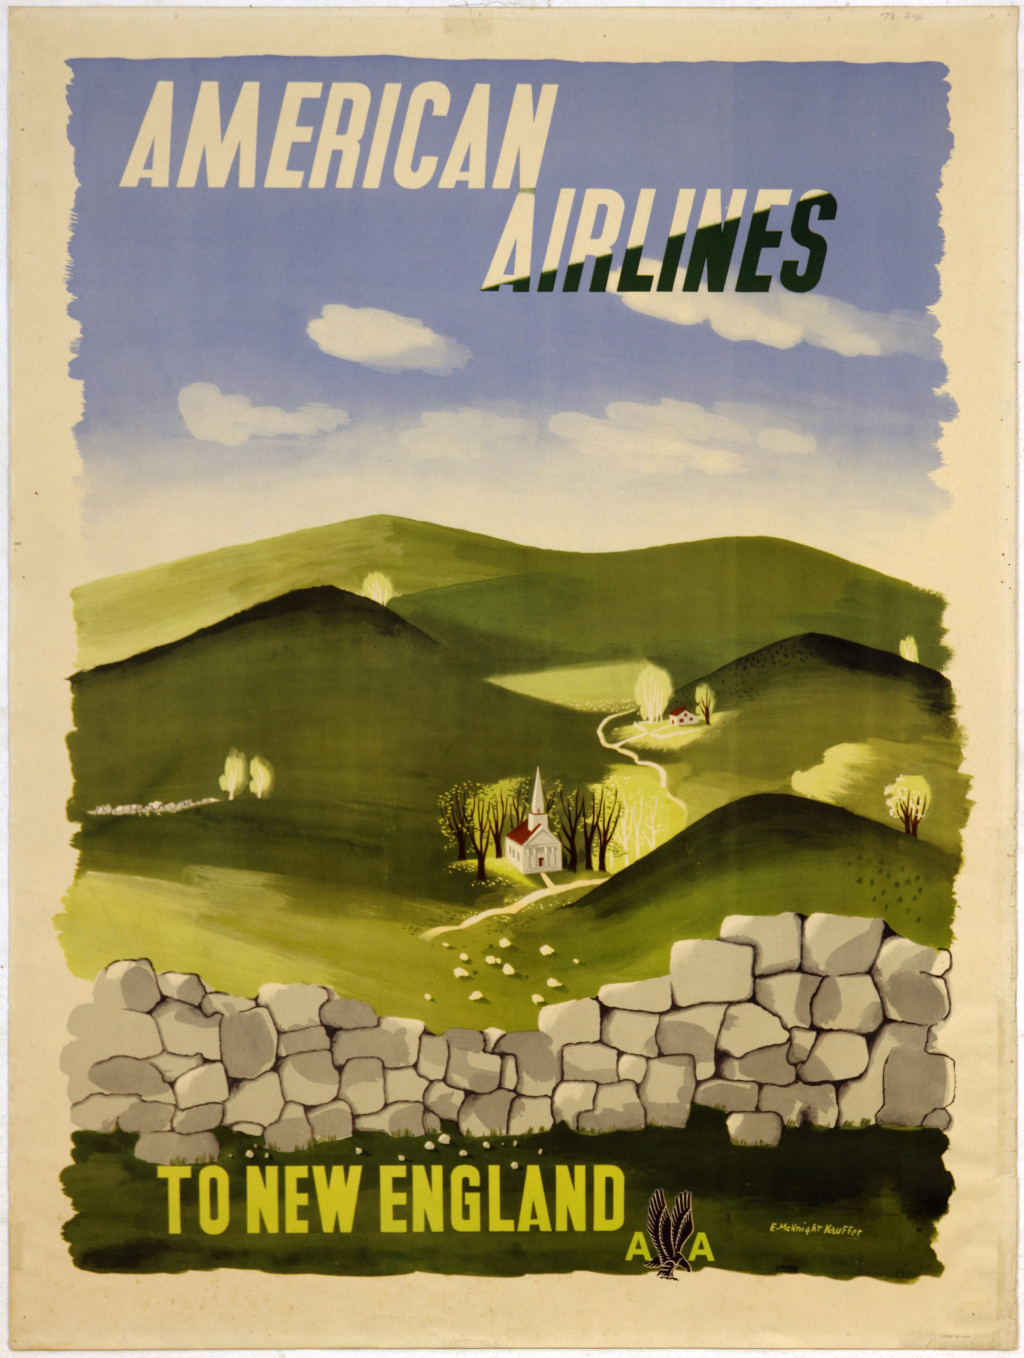 American Airlines to New England c.1950